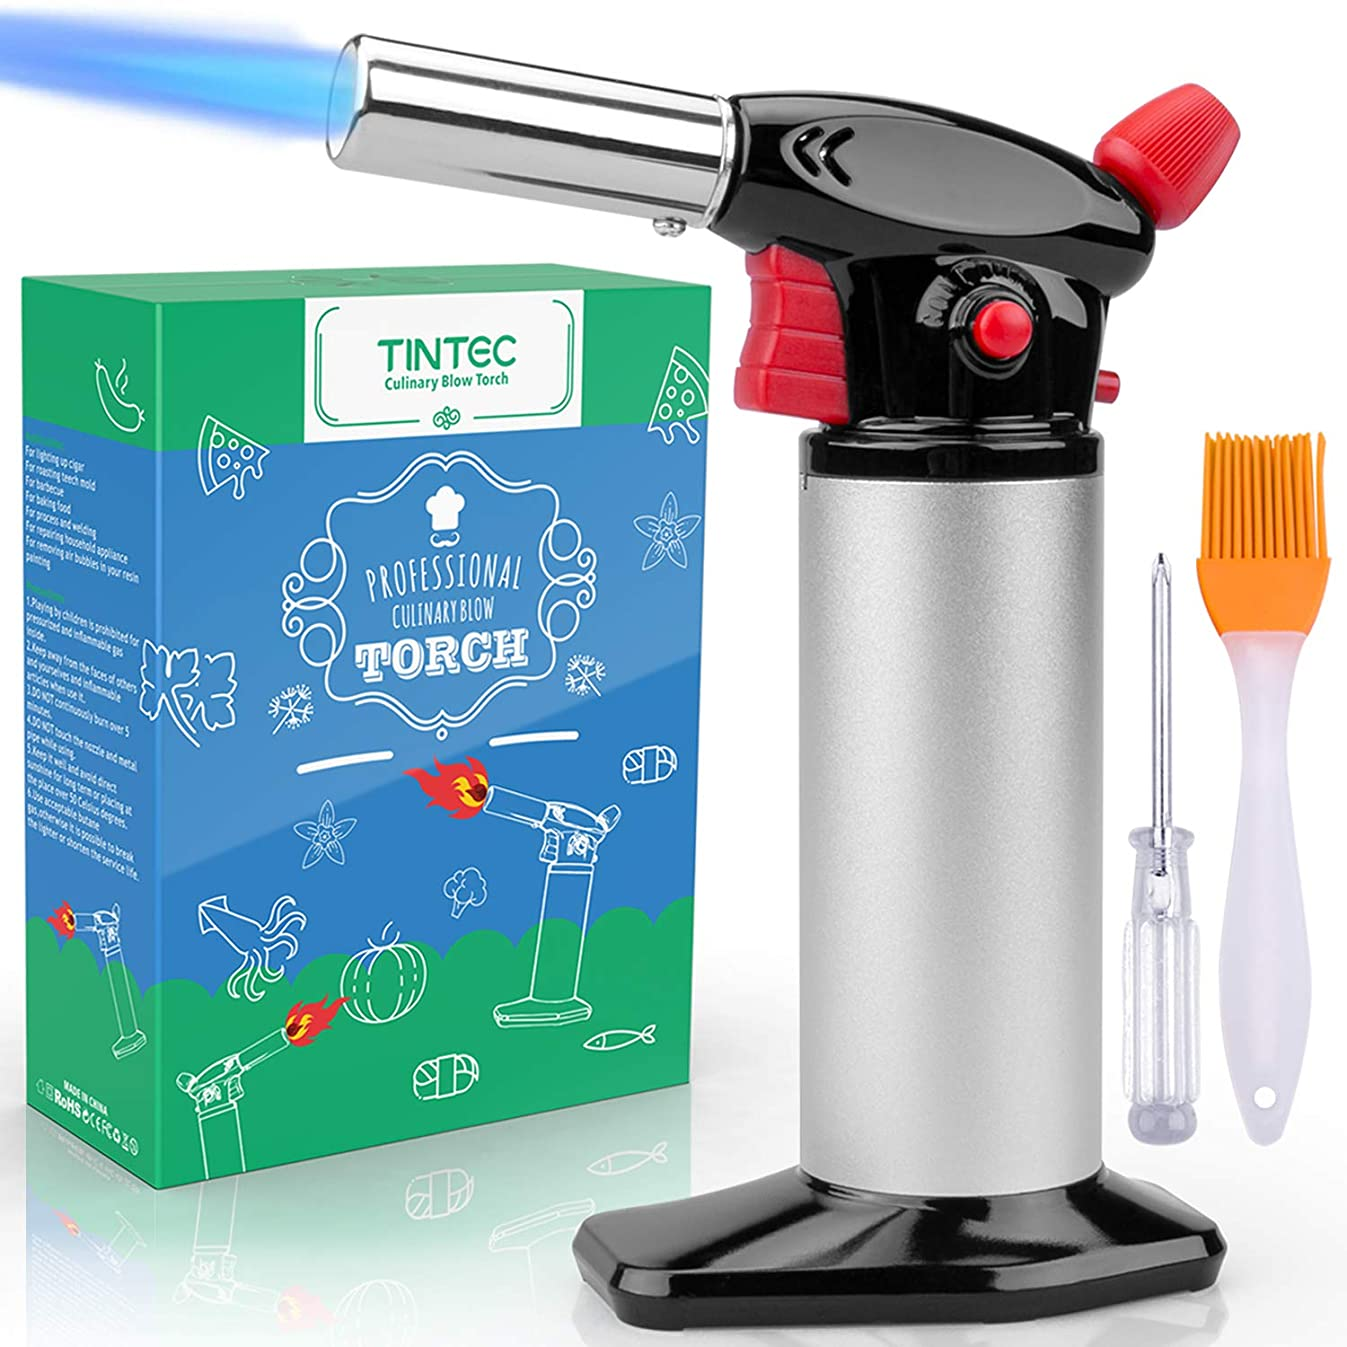 Cooking Torch Lighter, Tintec Chef Culinary Blow Torch Large Capacity, Butane Refillable, Flame Adjustable (MAX 2500°F) with Safety Lock for Cooking, BBQ, Baking, Brulee, Creme, DIY Soldering& more